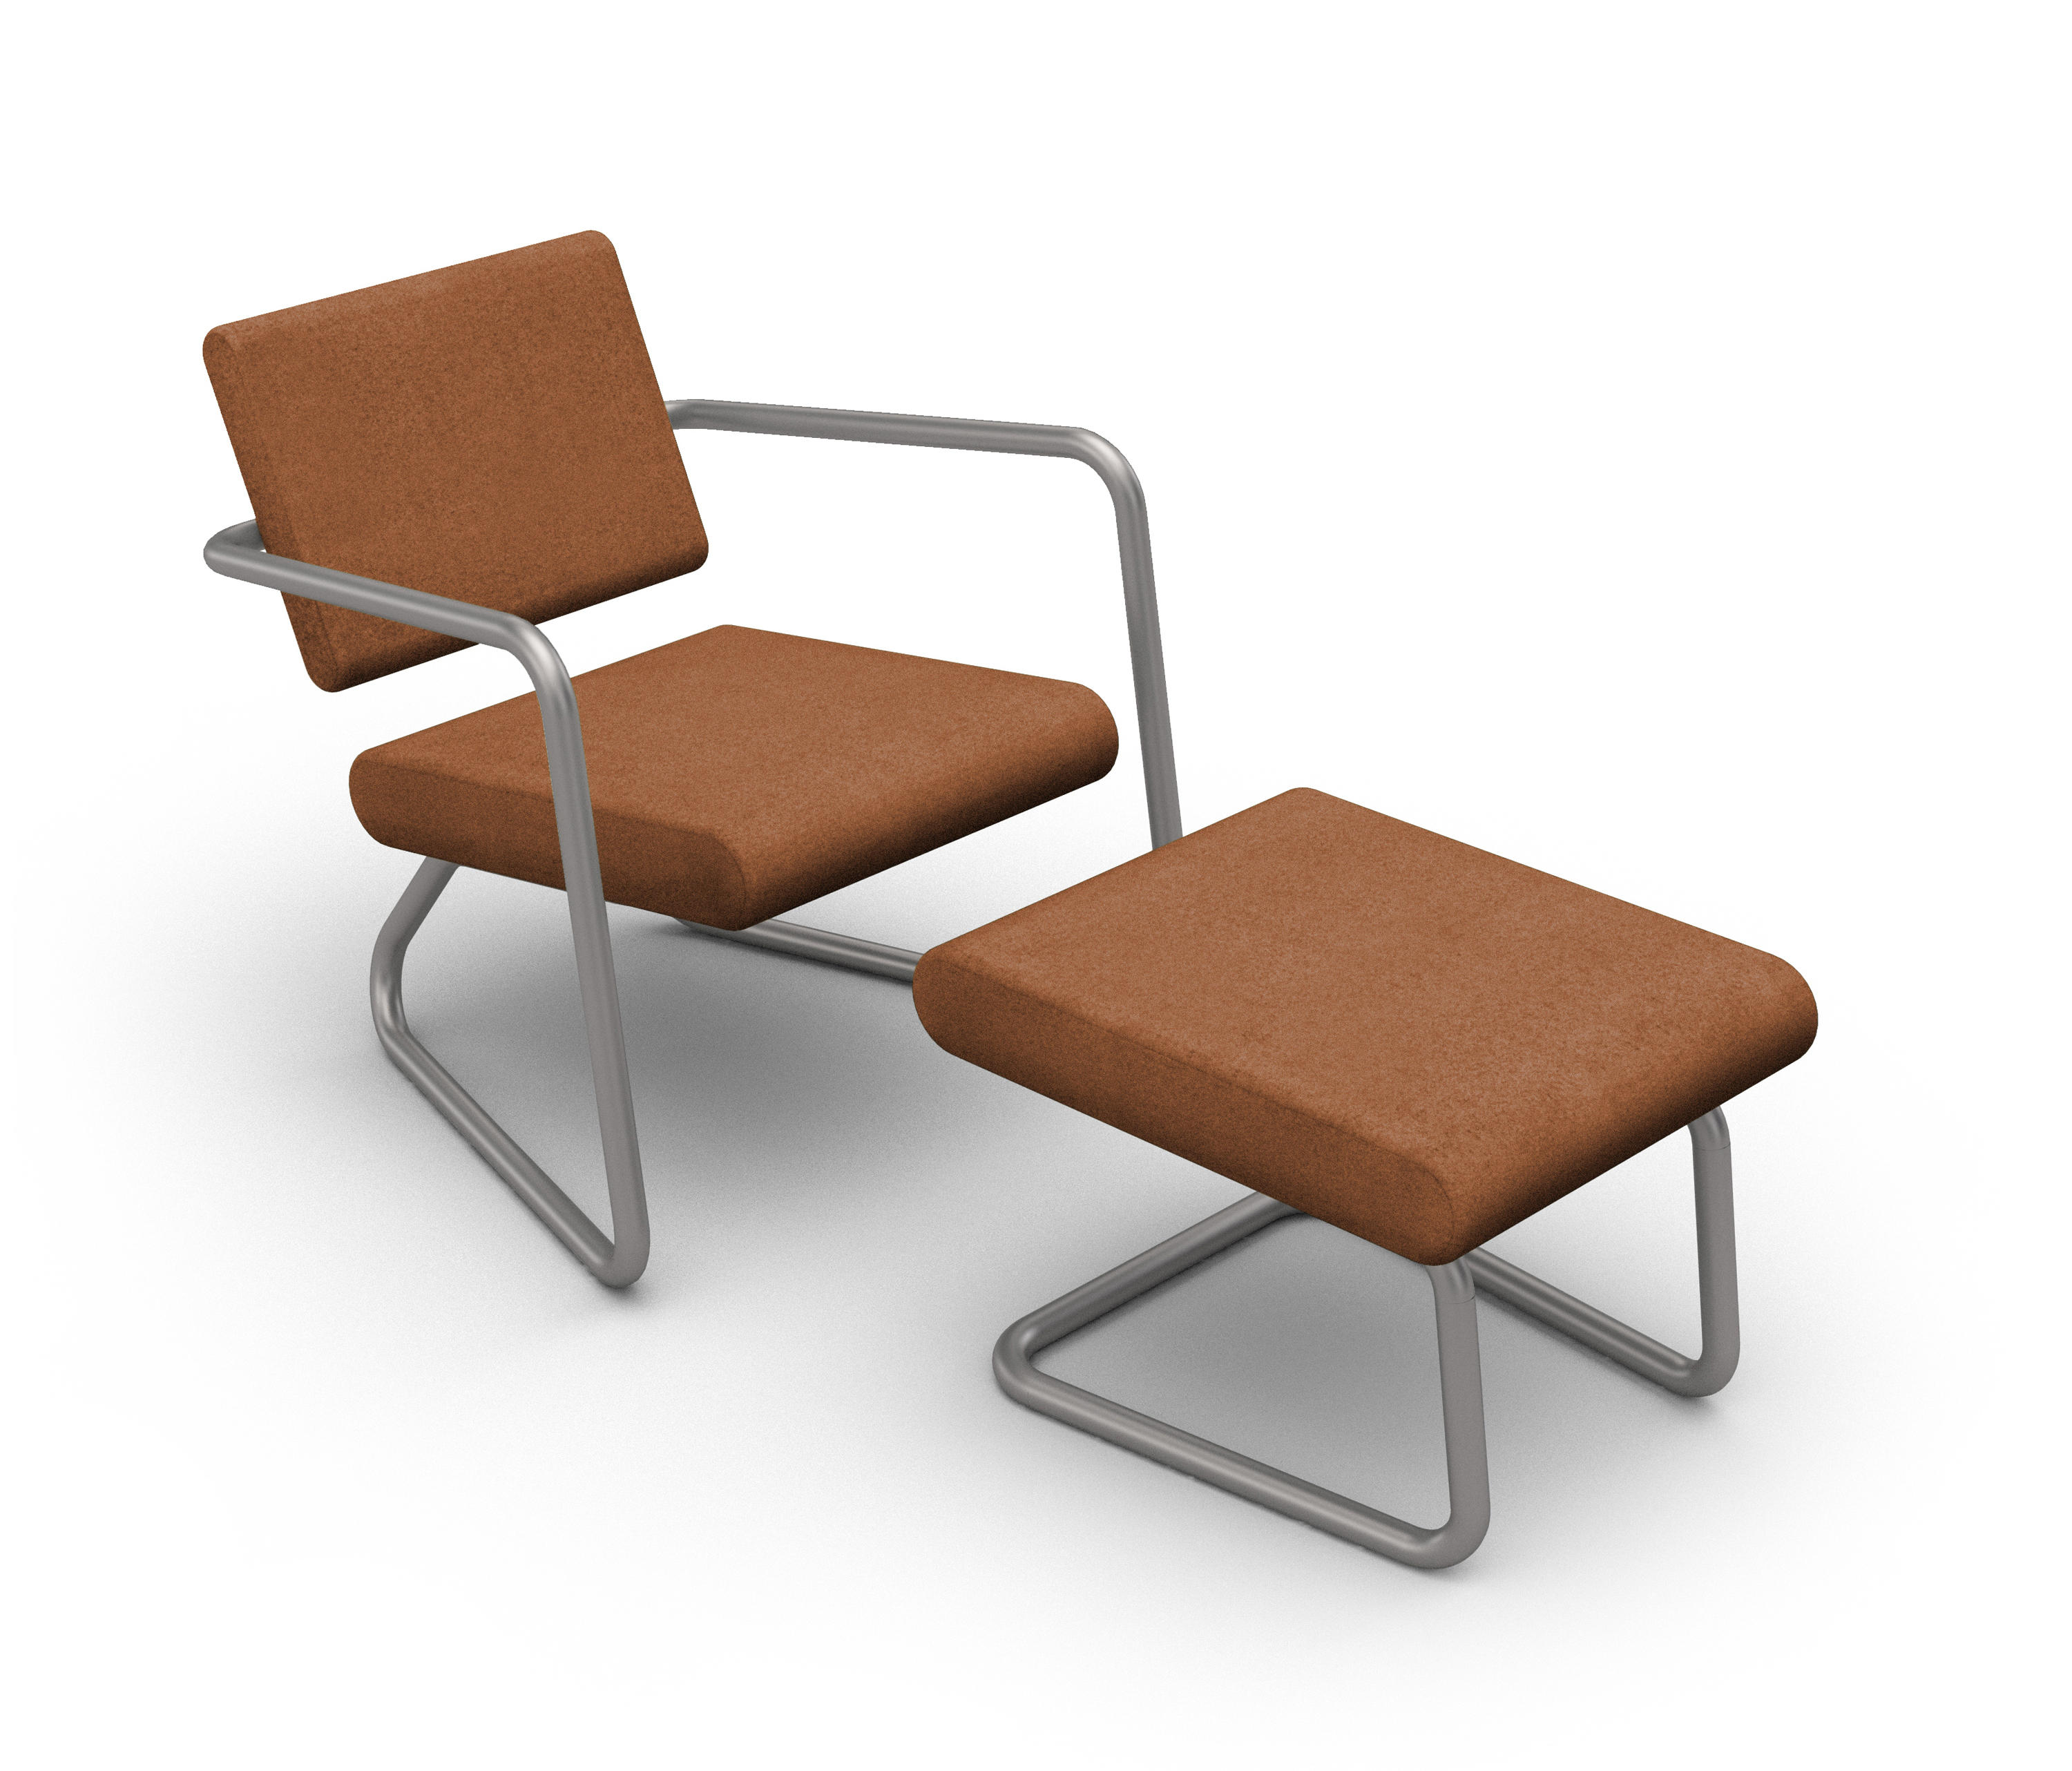 Steeler Armchair With Ottoman By Lonc | Armchairs ...